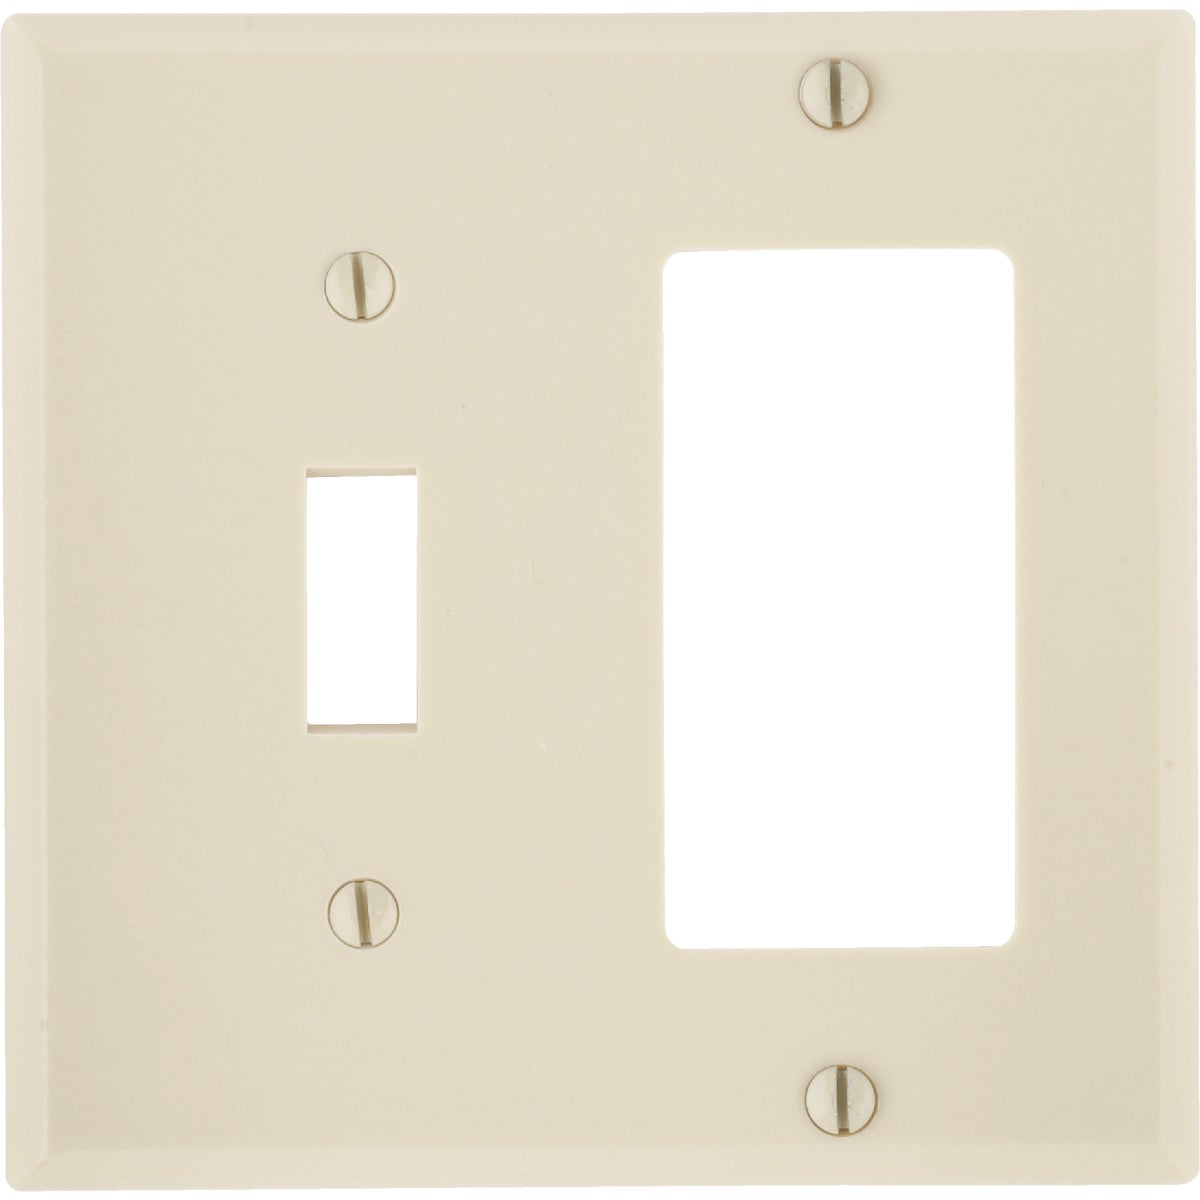 IV COMBO WALL PLATE - 80405I by Leviton Mfg Co